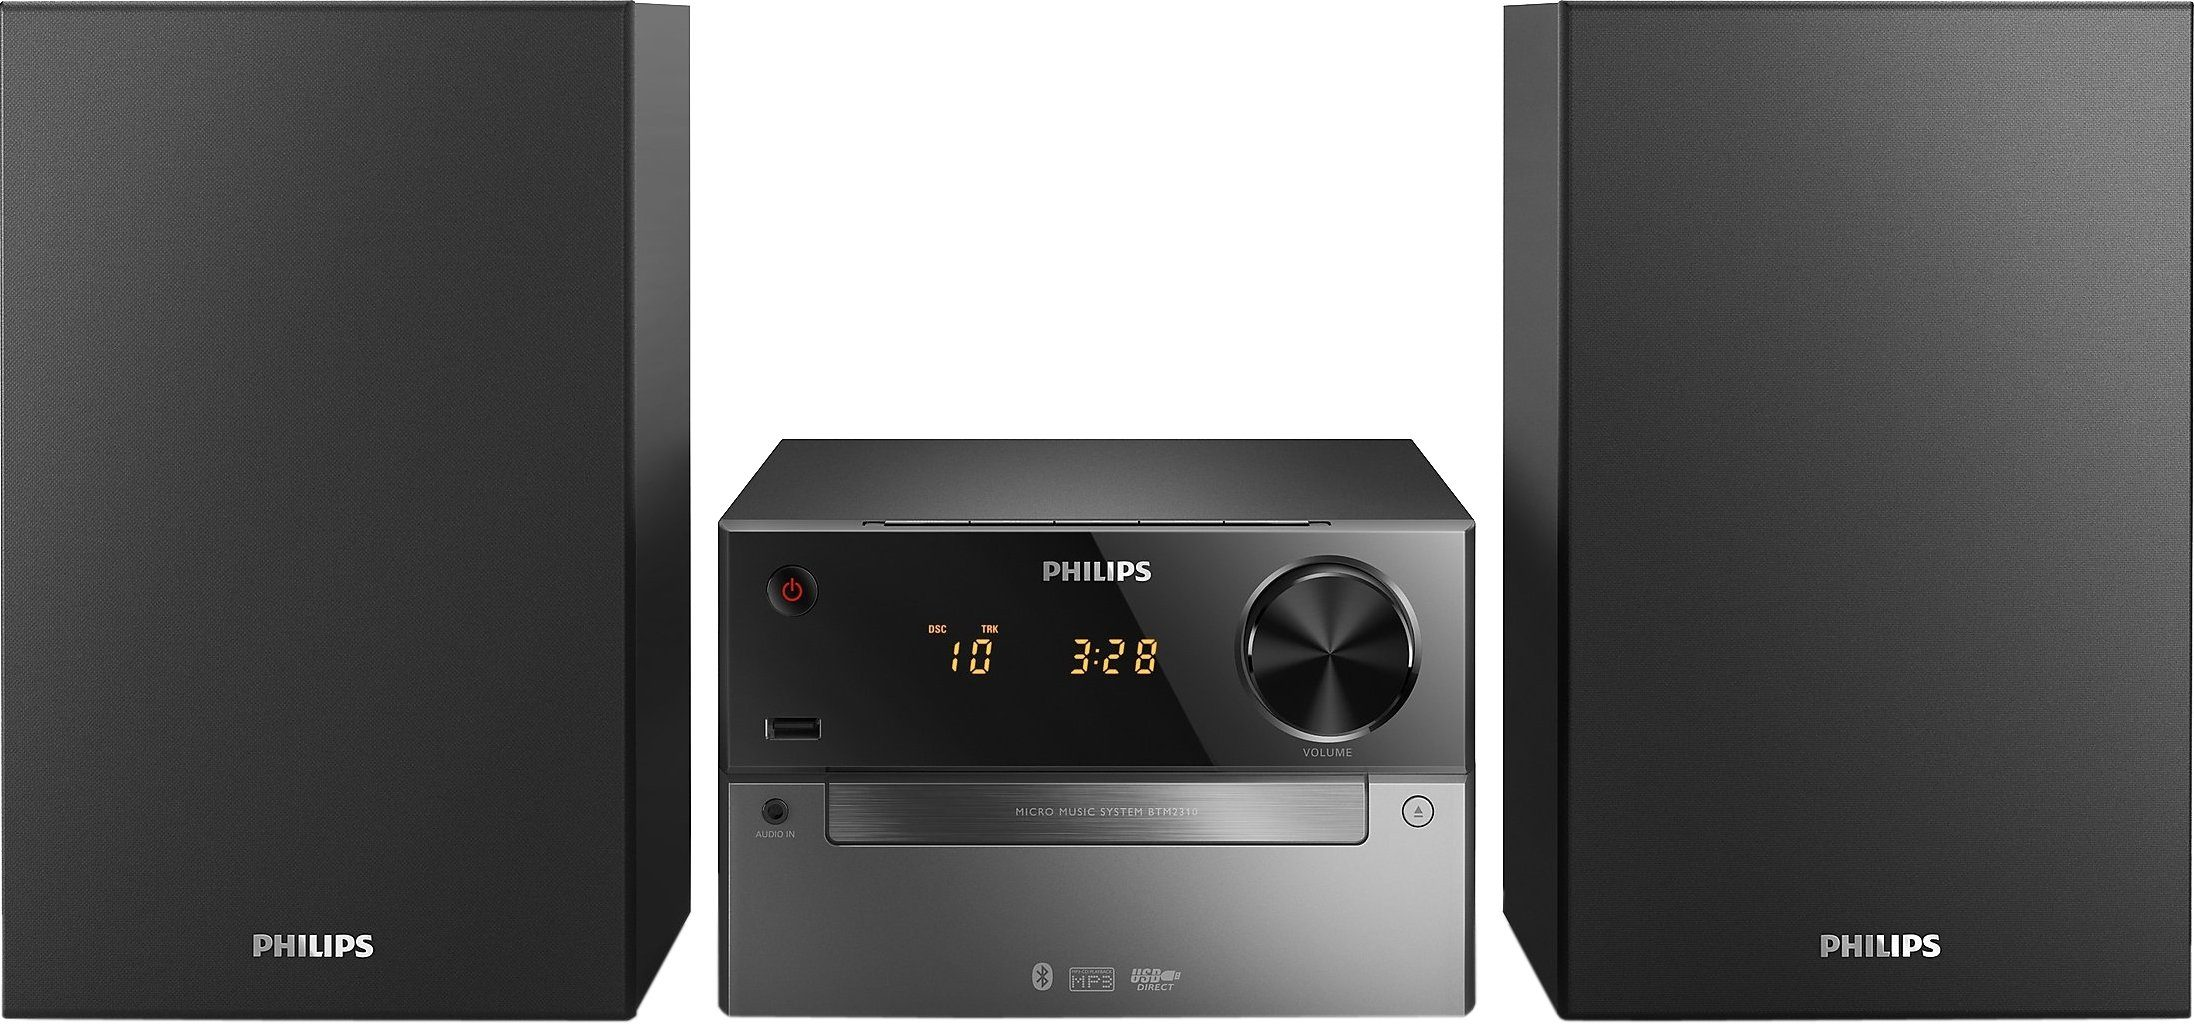 Philips BTM2310 Microanlage, Bluetooth, 1x USB